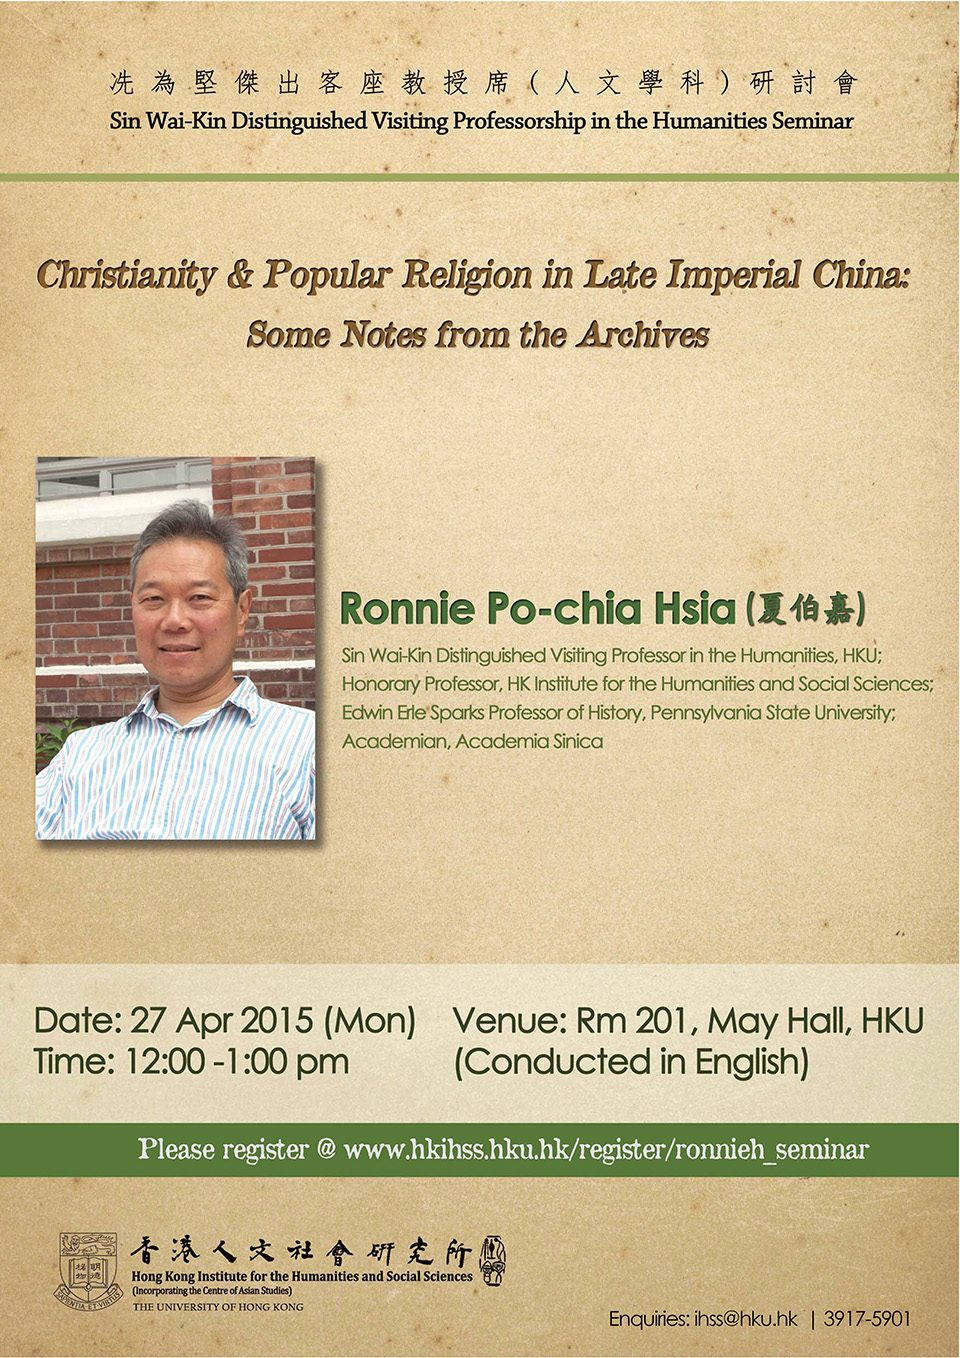 "Sin Wai-Kin Distinguished Visiting Professorship in the Humanities Seminar on ""Christianity & Popular Religion in Late Imperial China: Some Notes from the Archives"" by Professor Ronnie Po-chia Hsia (April 27, 2015)"